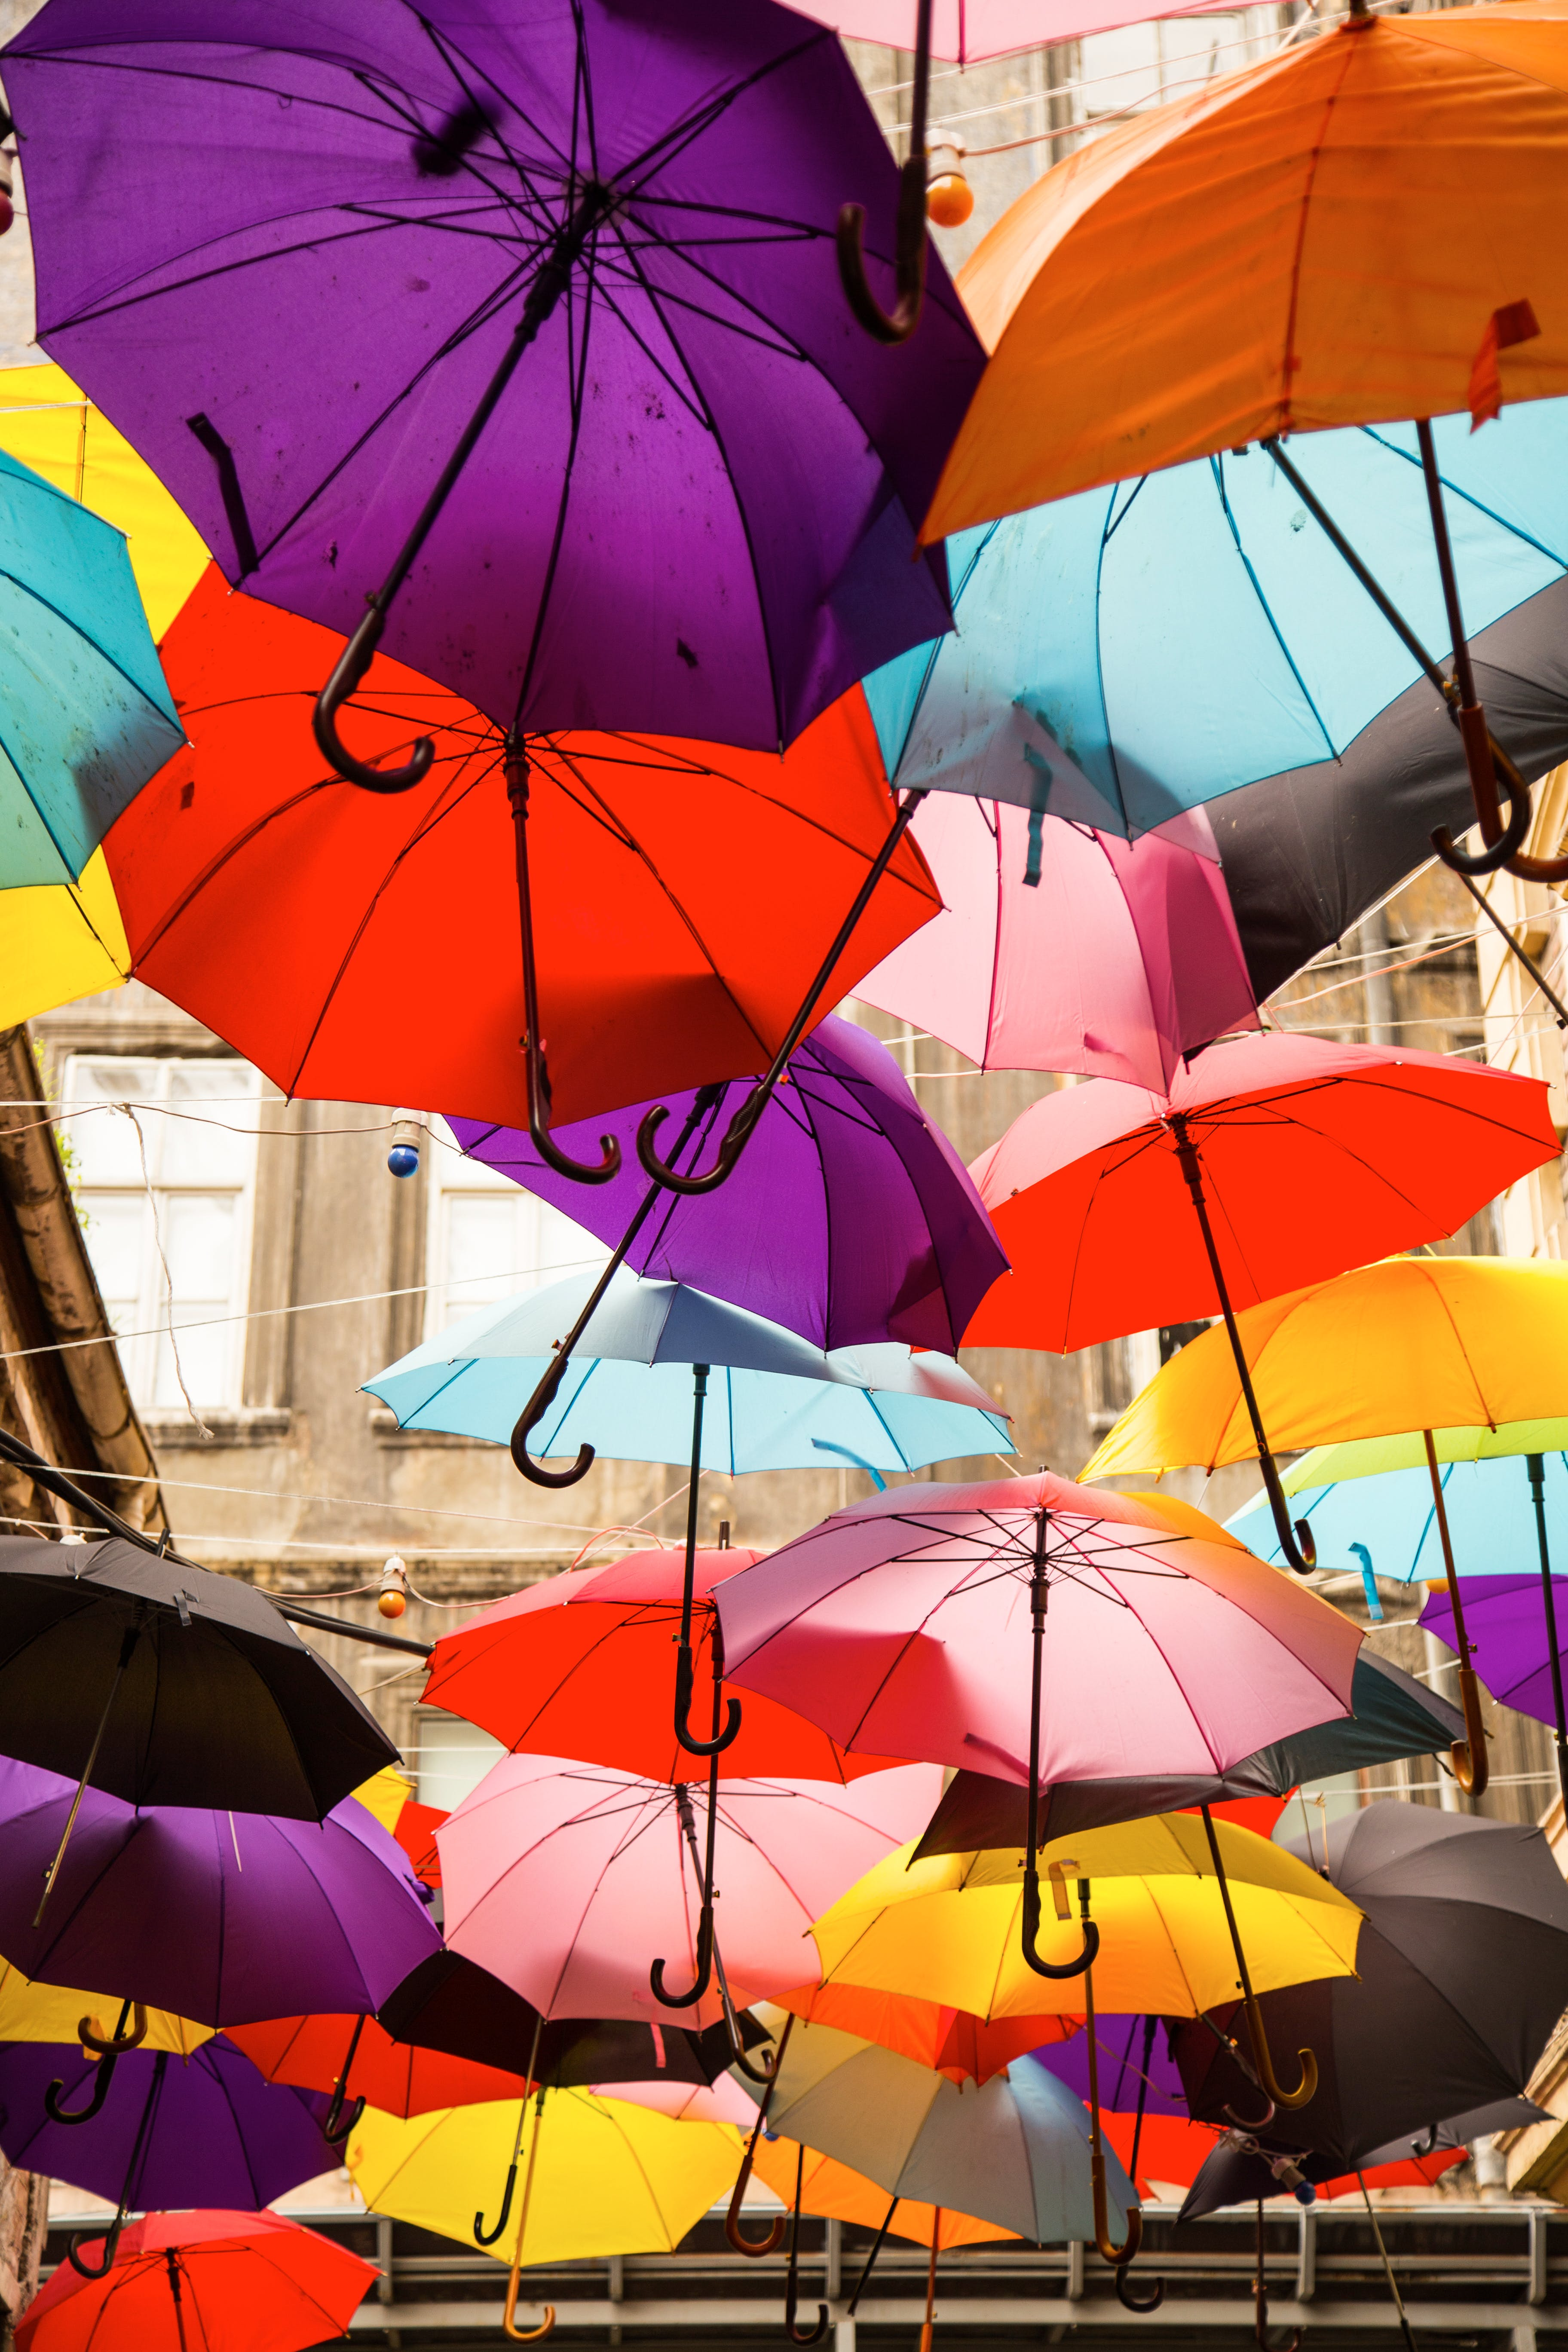 Assorted-color Hanging Umbrellas